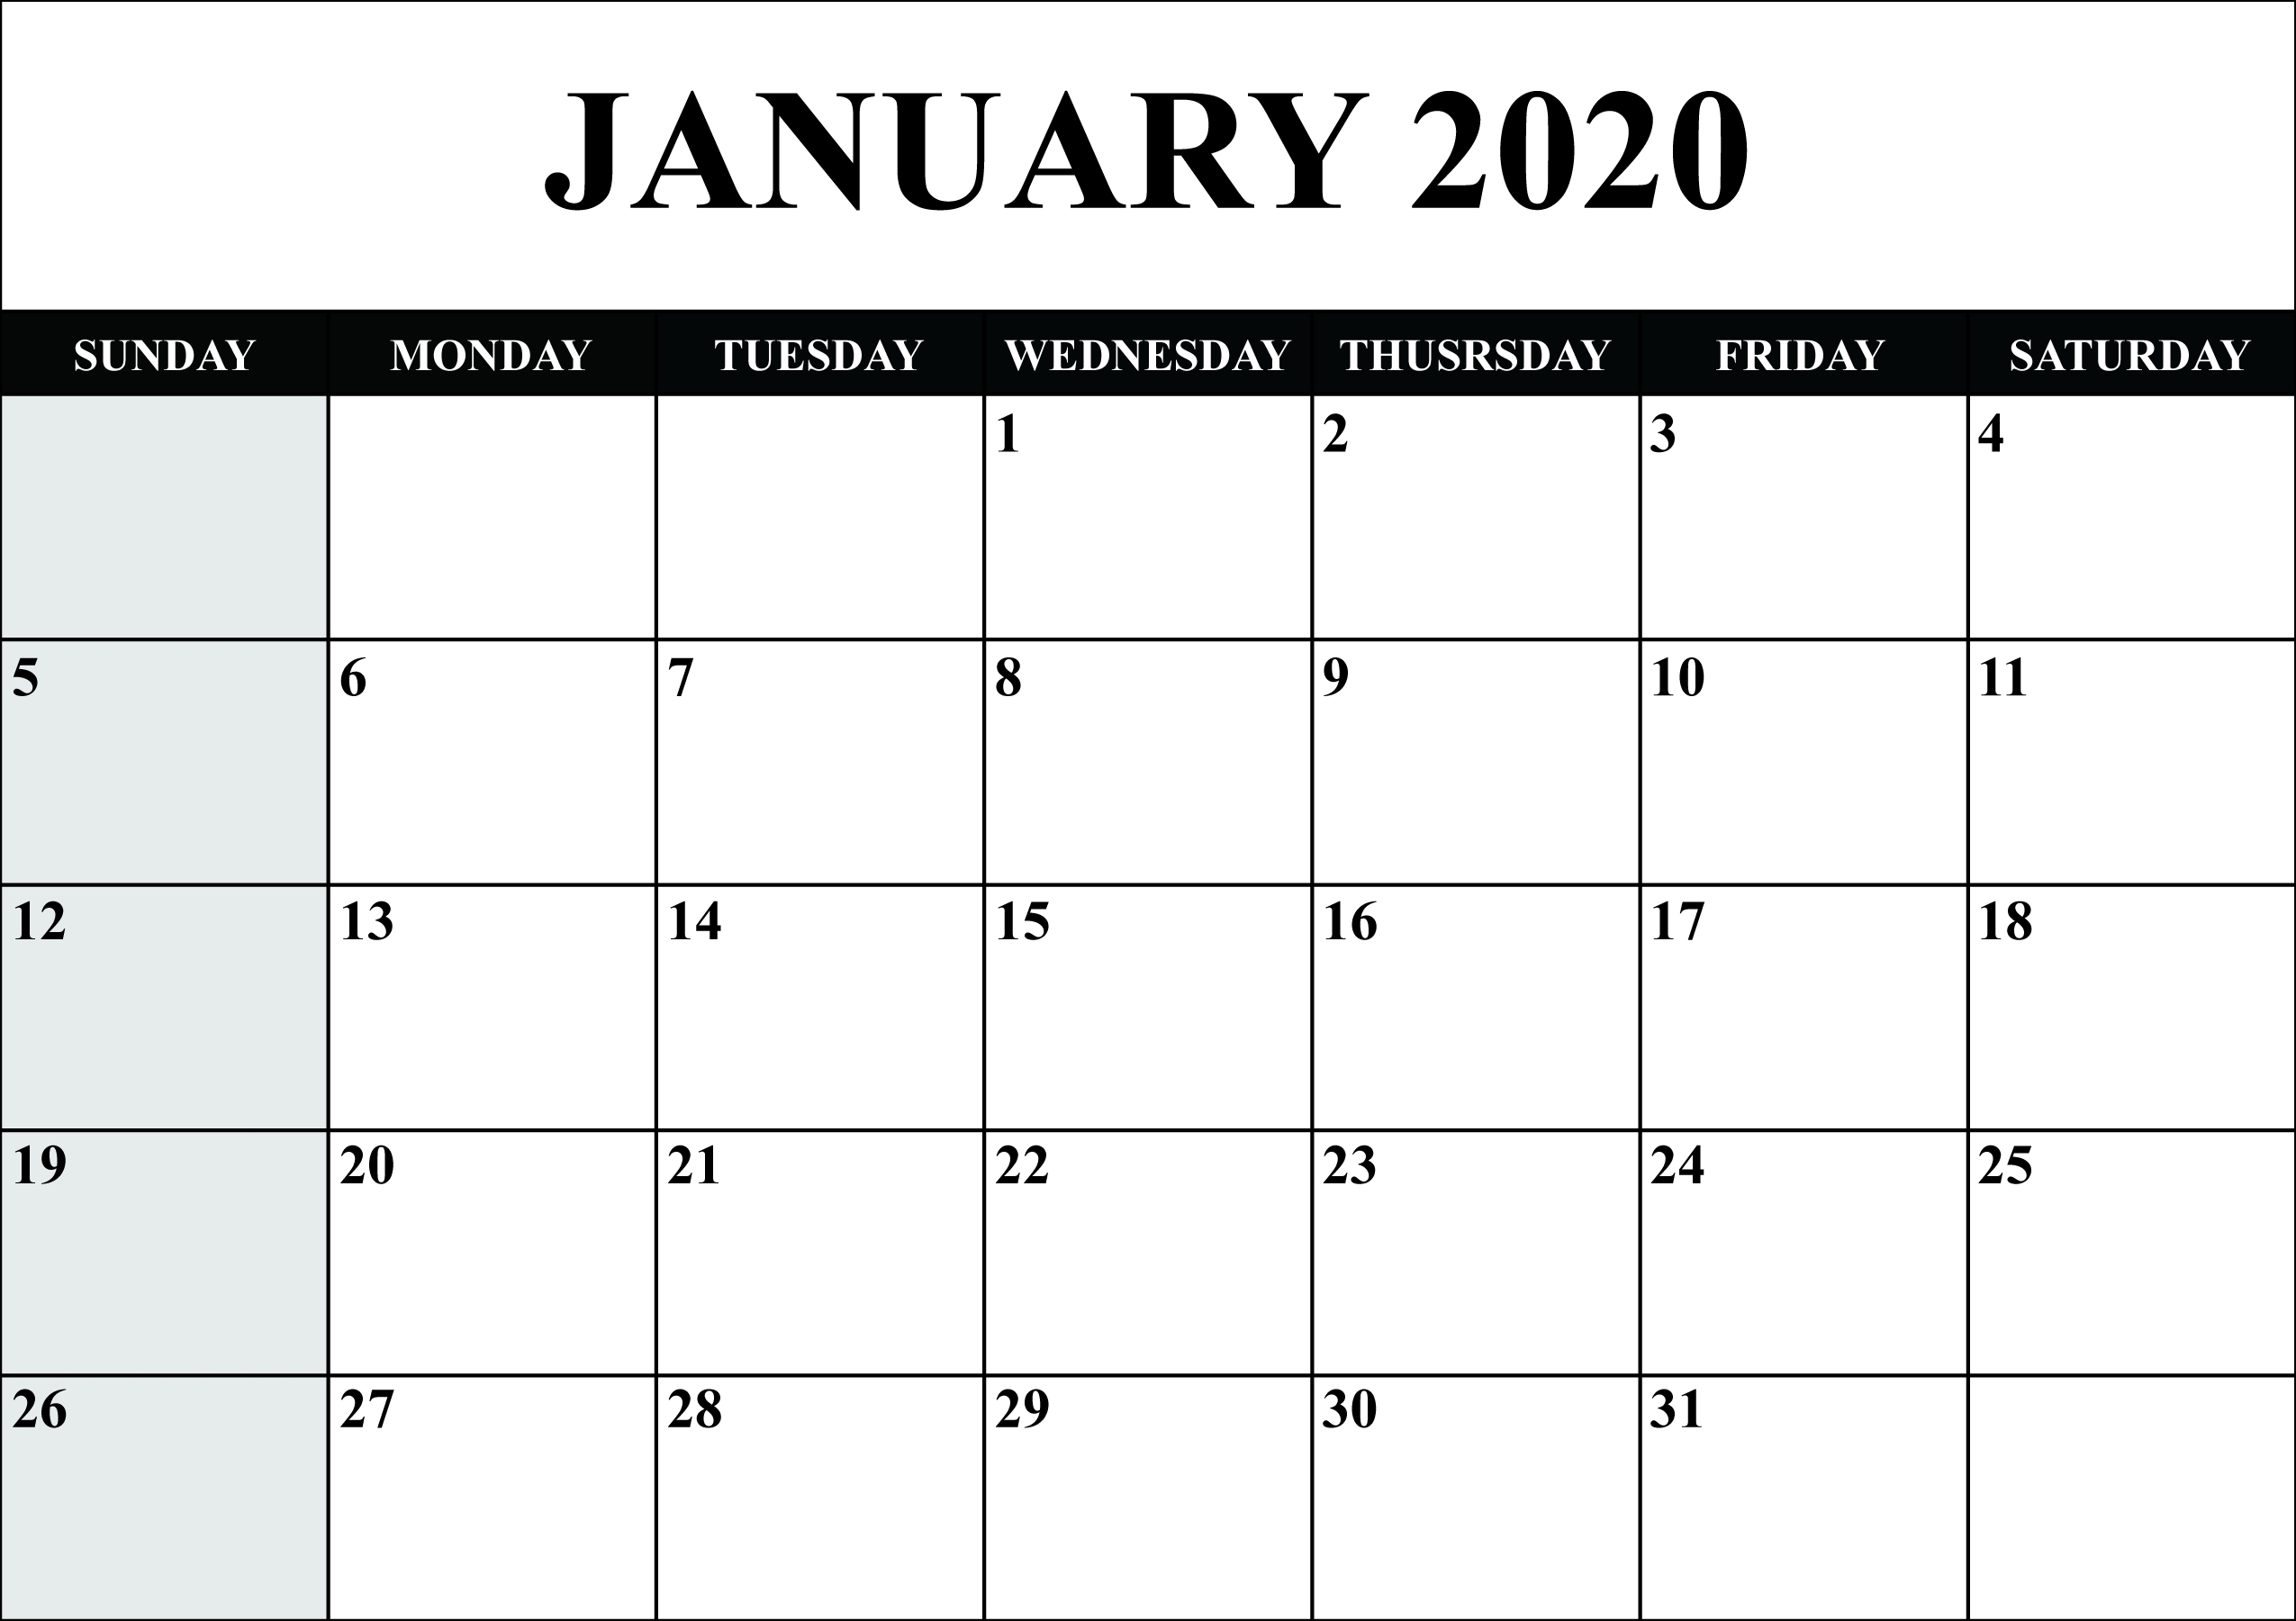 Free Blank January 2020 Calendar Printable In Pdf, Word-January 2020 Calendar Wiki